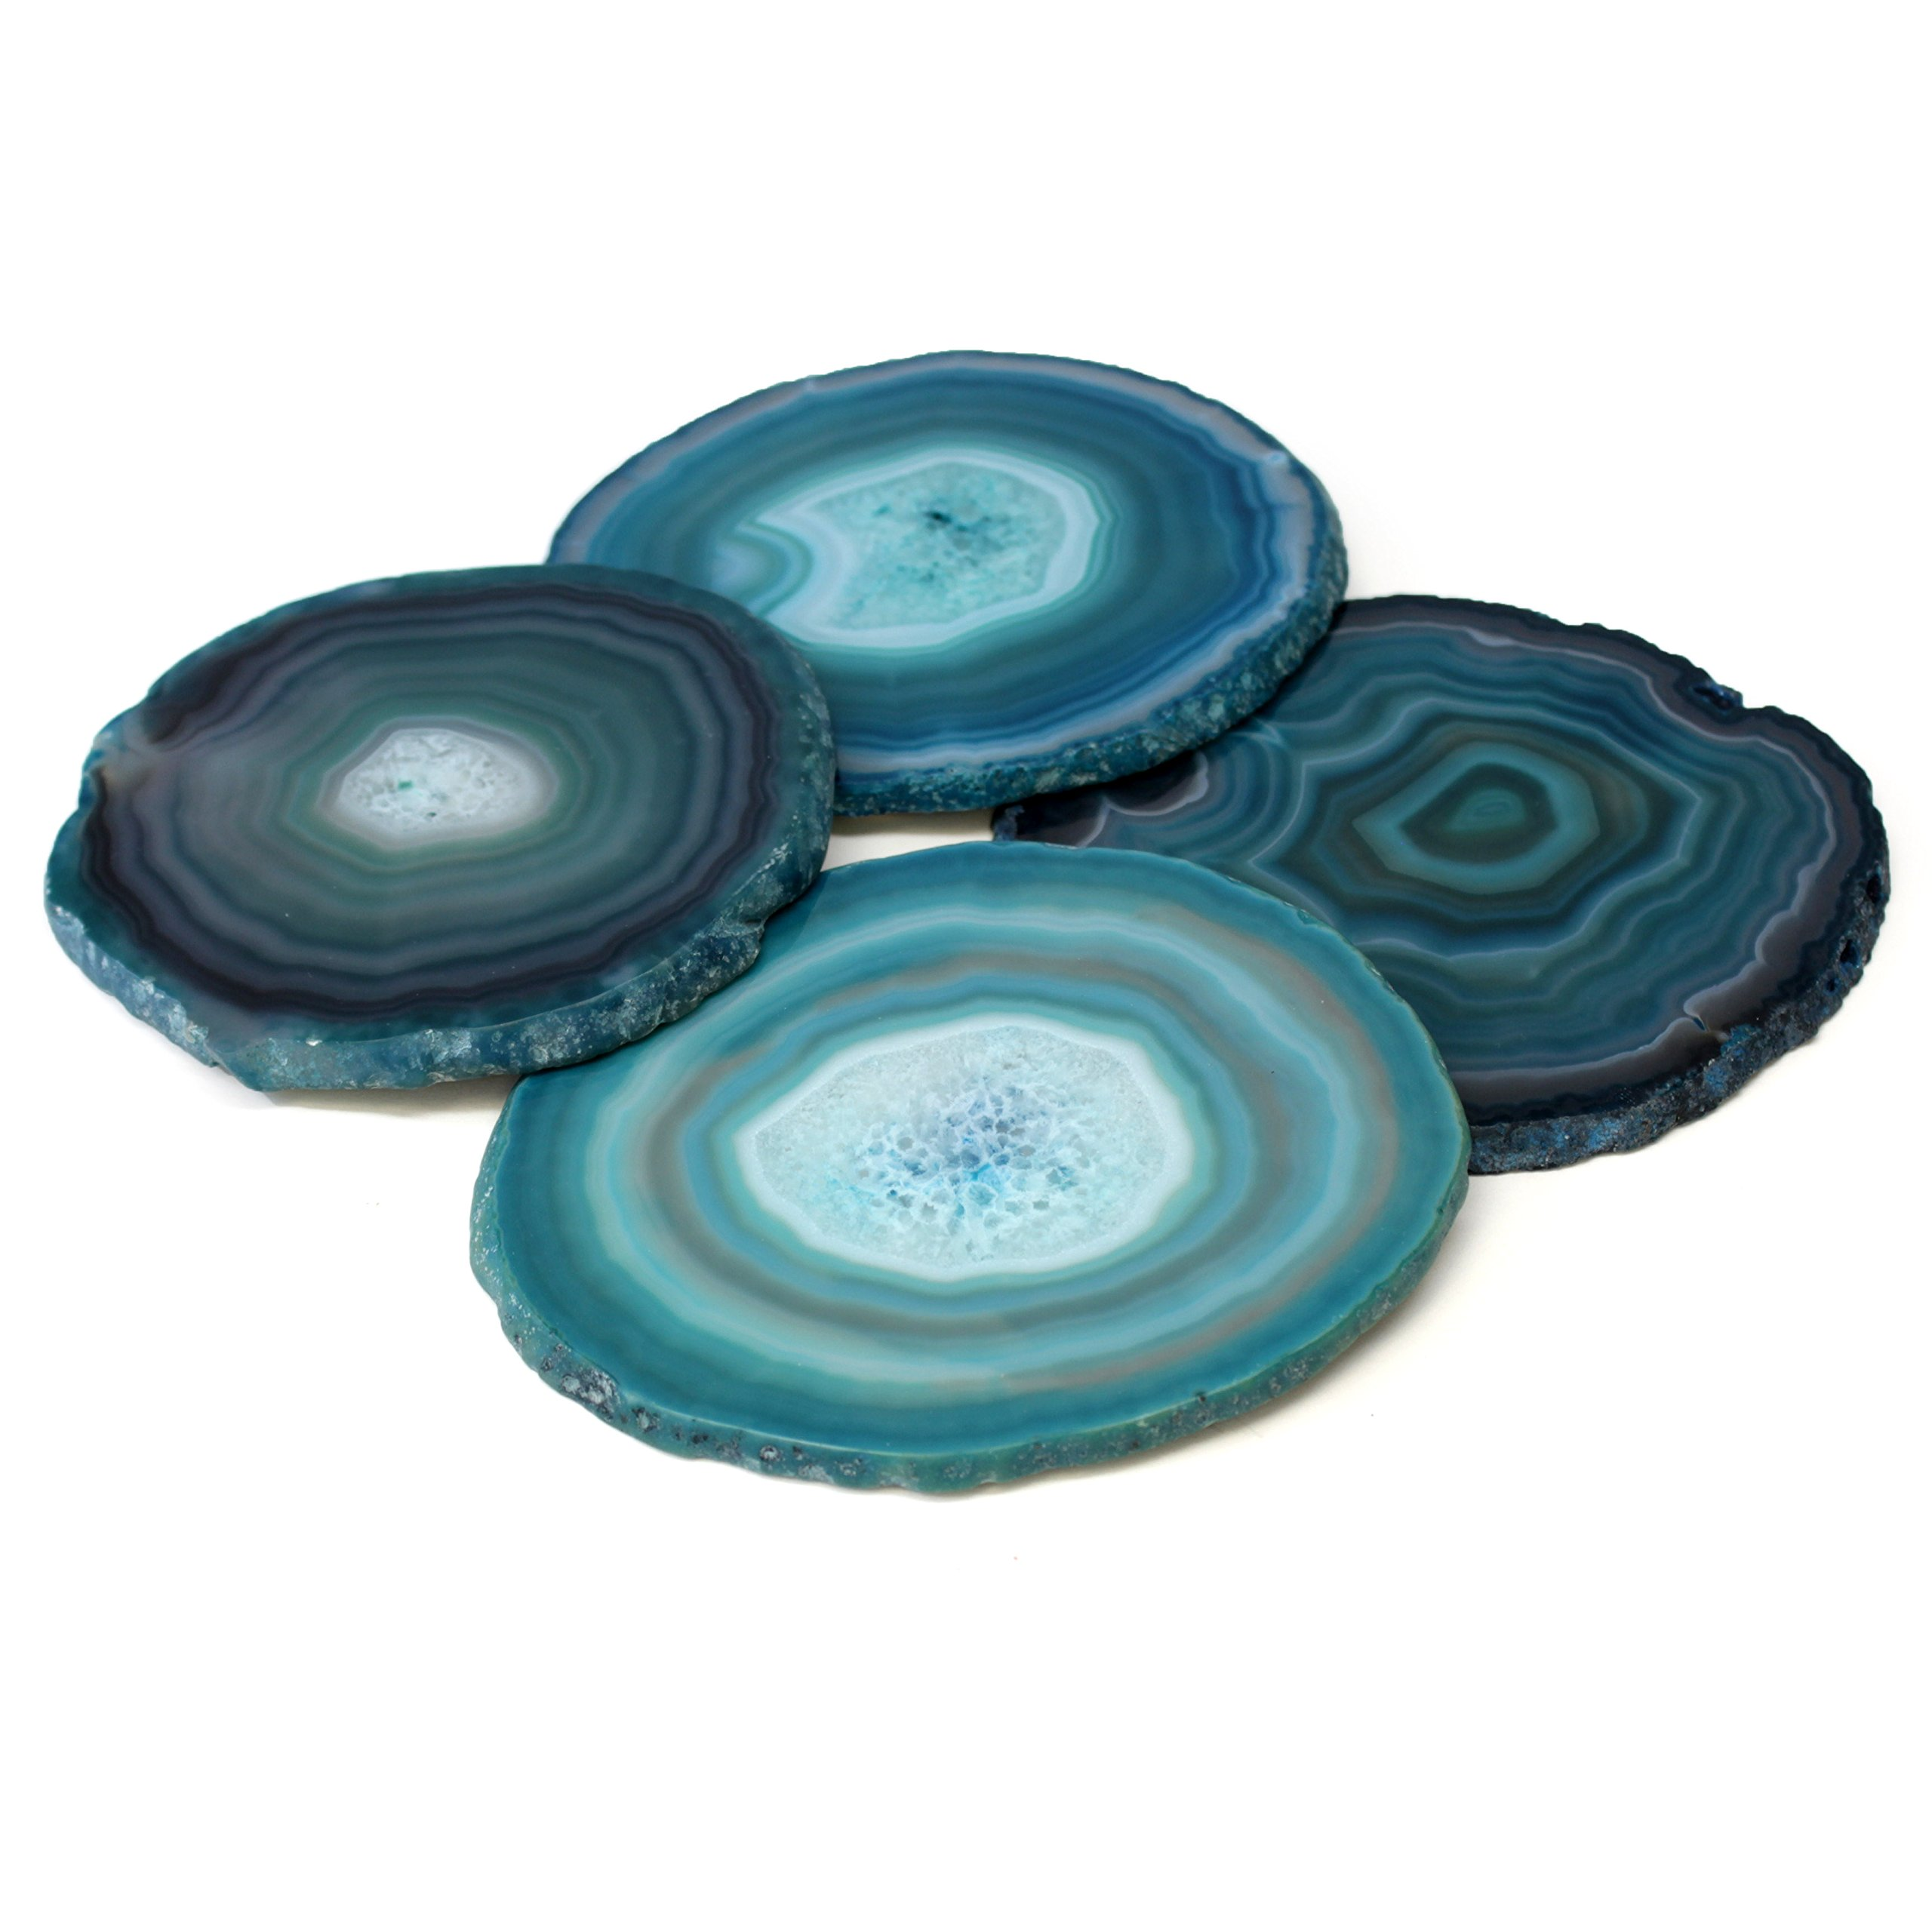 Gift Set of Four Genuine Brazilian (4''- 5'') Agate Coasters. Protective rubber bumpers attached. Certified agate information card included - TEAL by The Royal Gift Shop (Image #1)